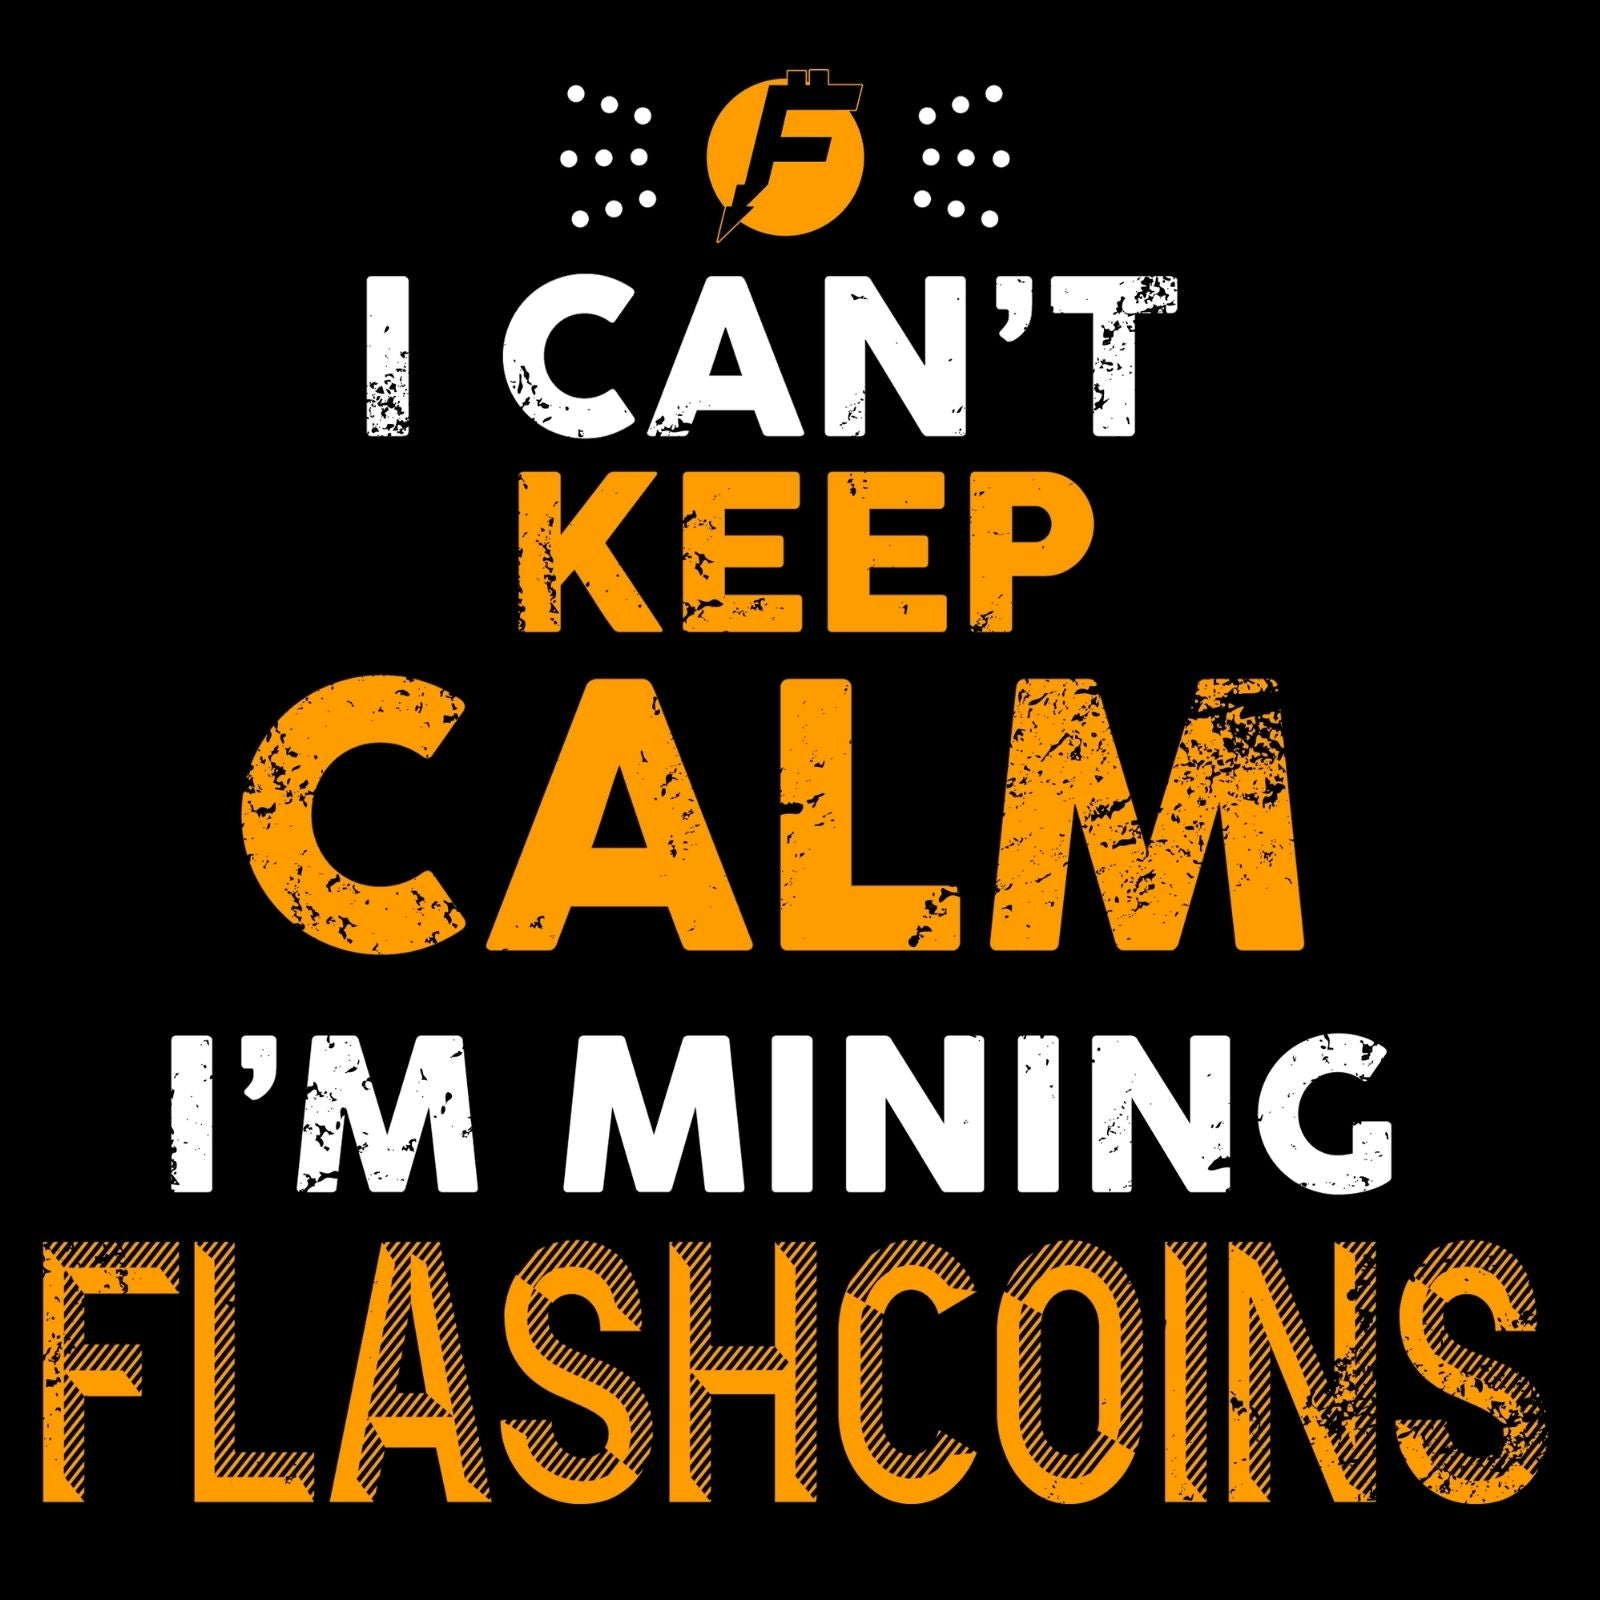 I Can't Keep Calm I'm Mining Flashcoins - Bastard Graphics